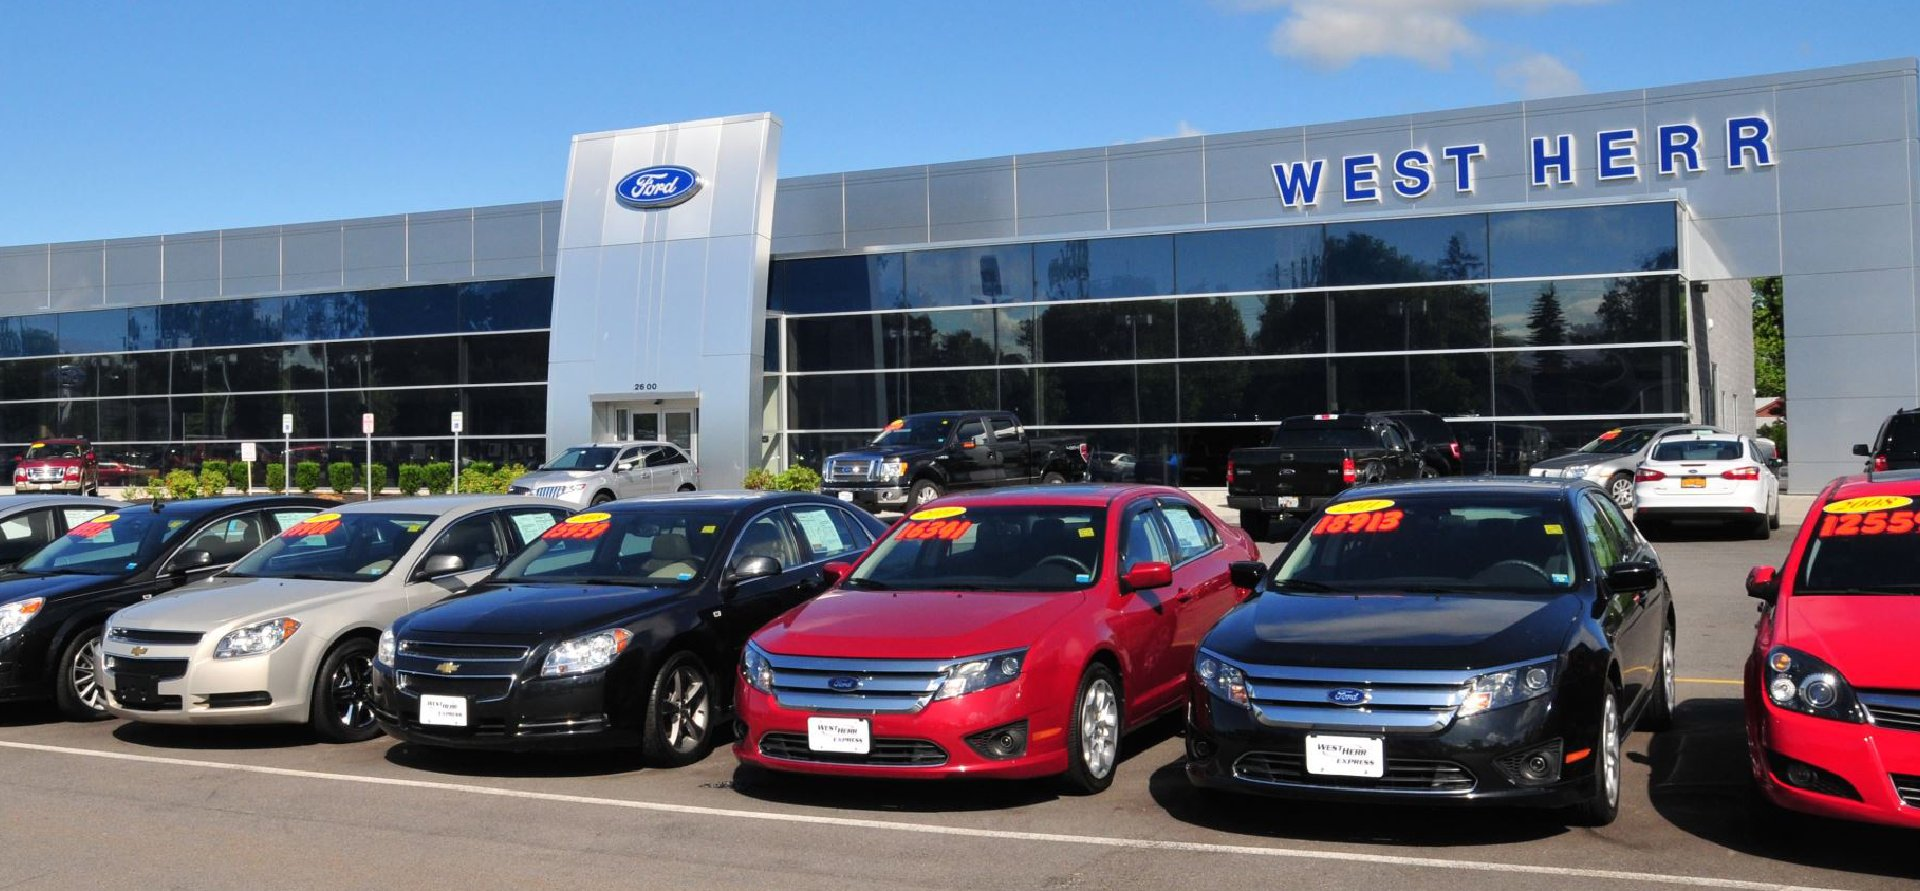 West Herr Ford Amherst outside the dealership